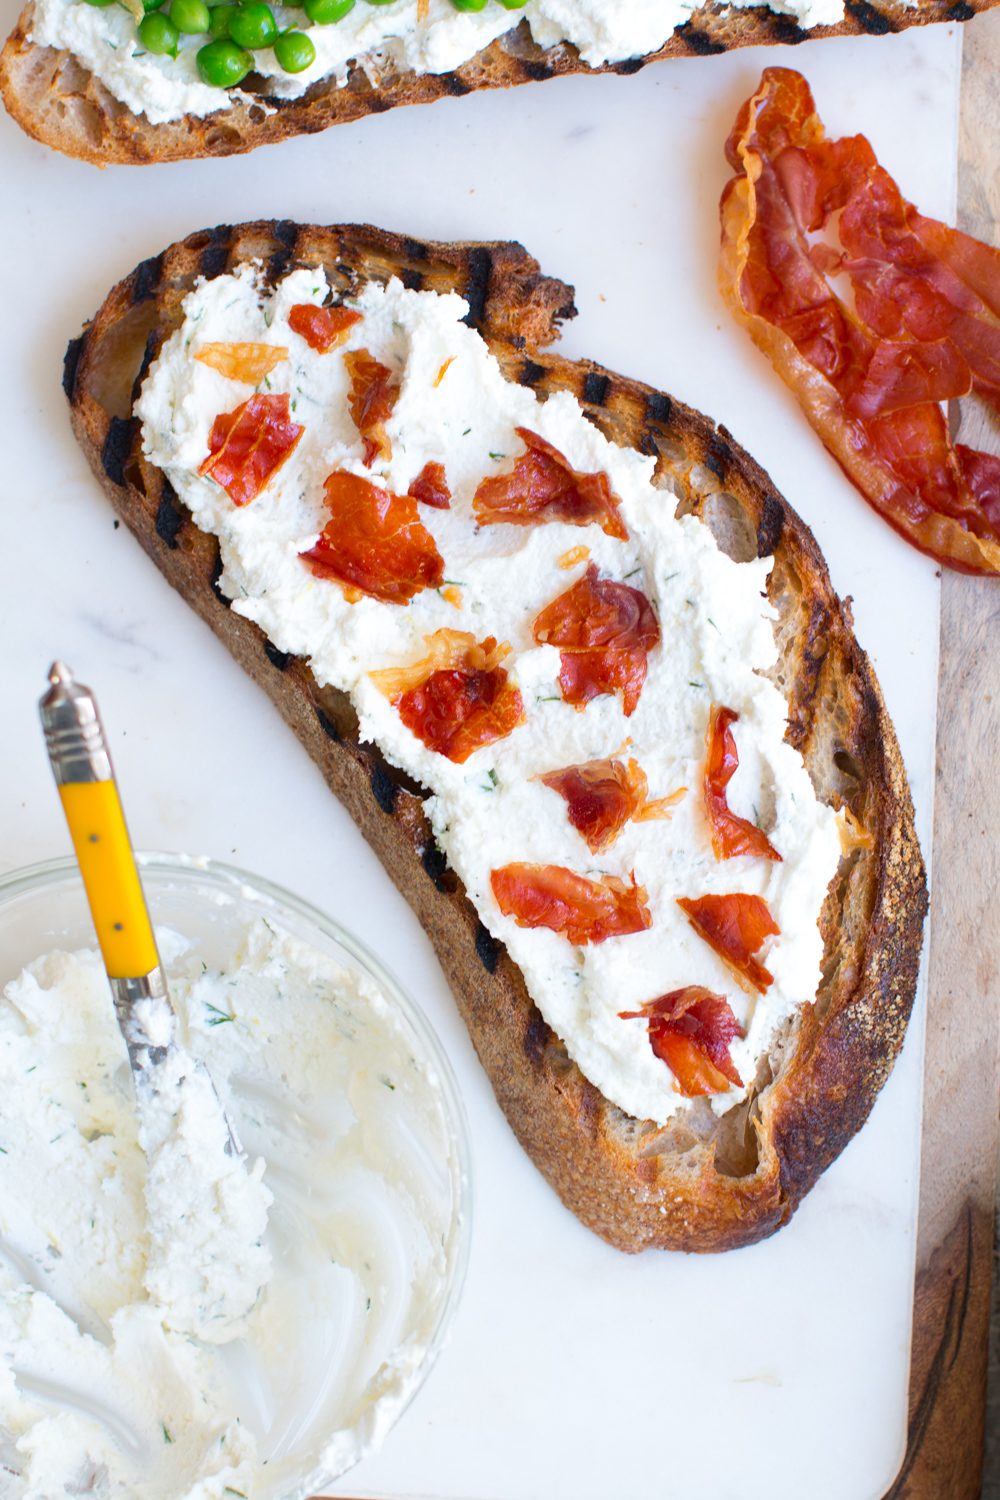 grilled Gjusta sourdough with goat cheese spread and crispy prosciutto